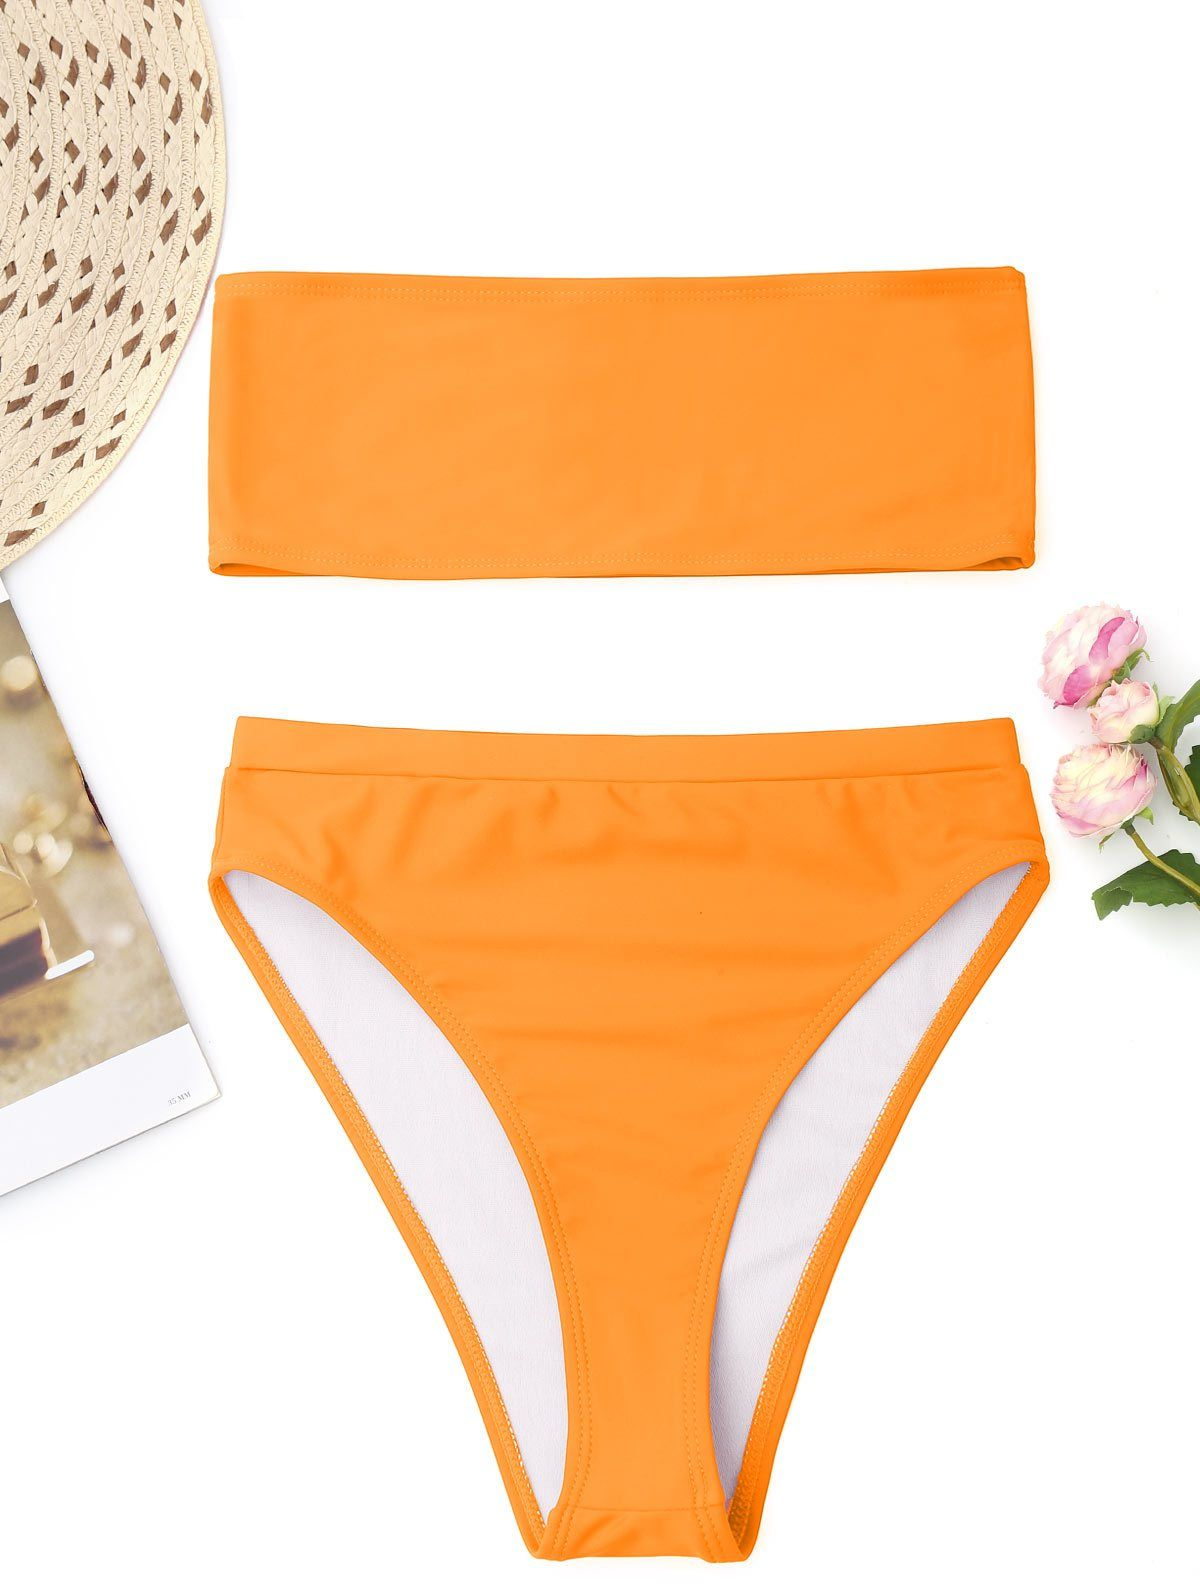 6a67f61178578 ZAFUL 2018 High Cut Bandeau Bikini Set Women Sexy Brazilian Bikini Swimwear  Push Up Padded Swimsuit